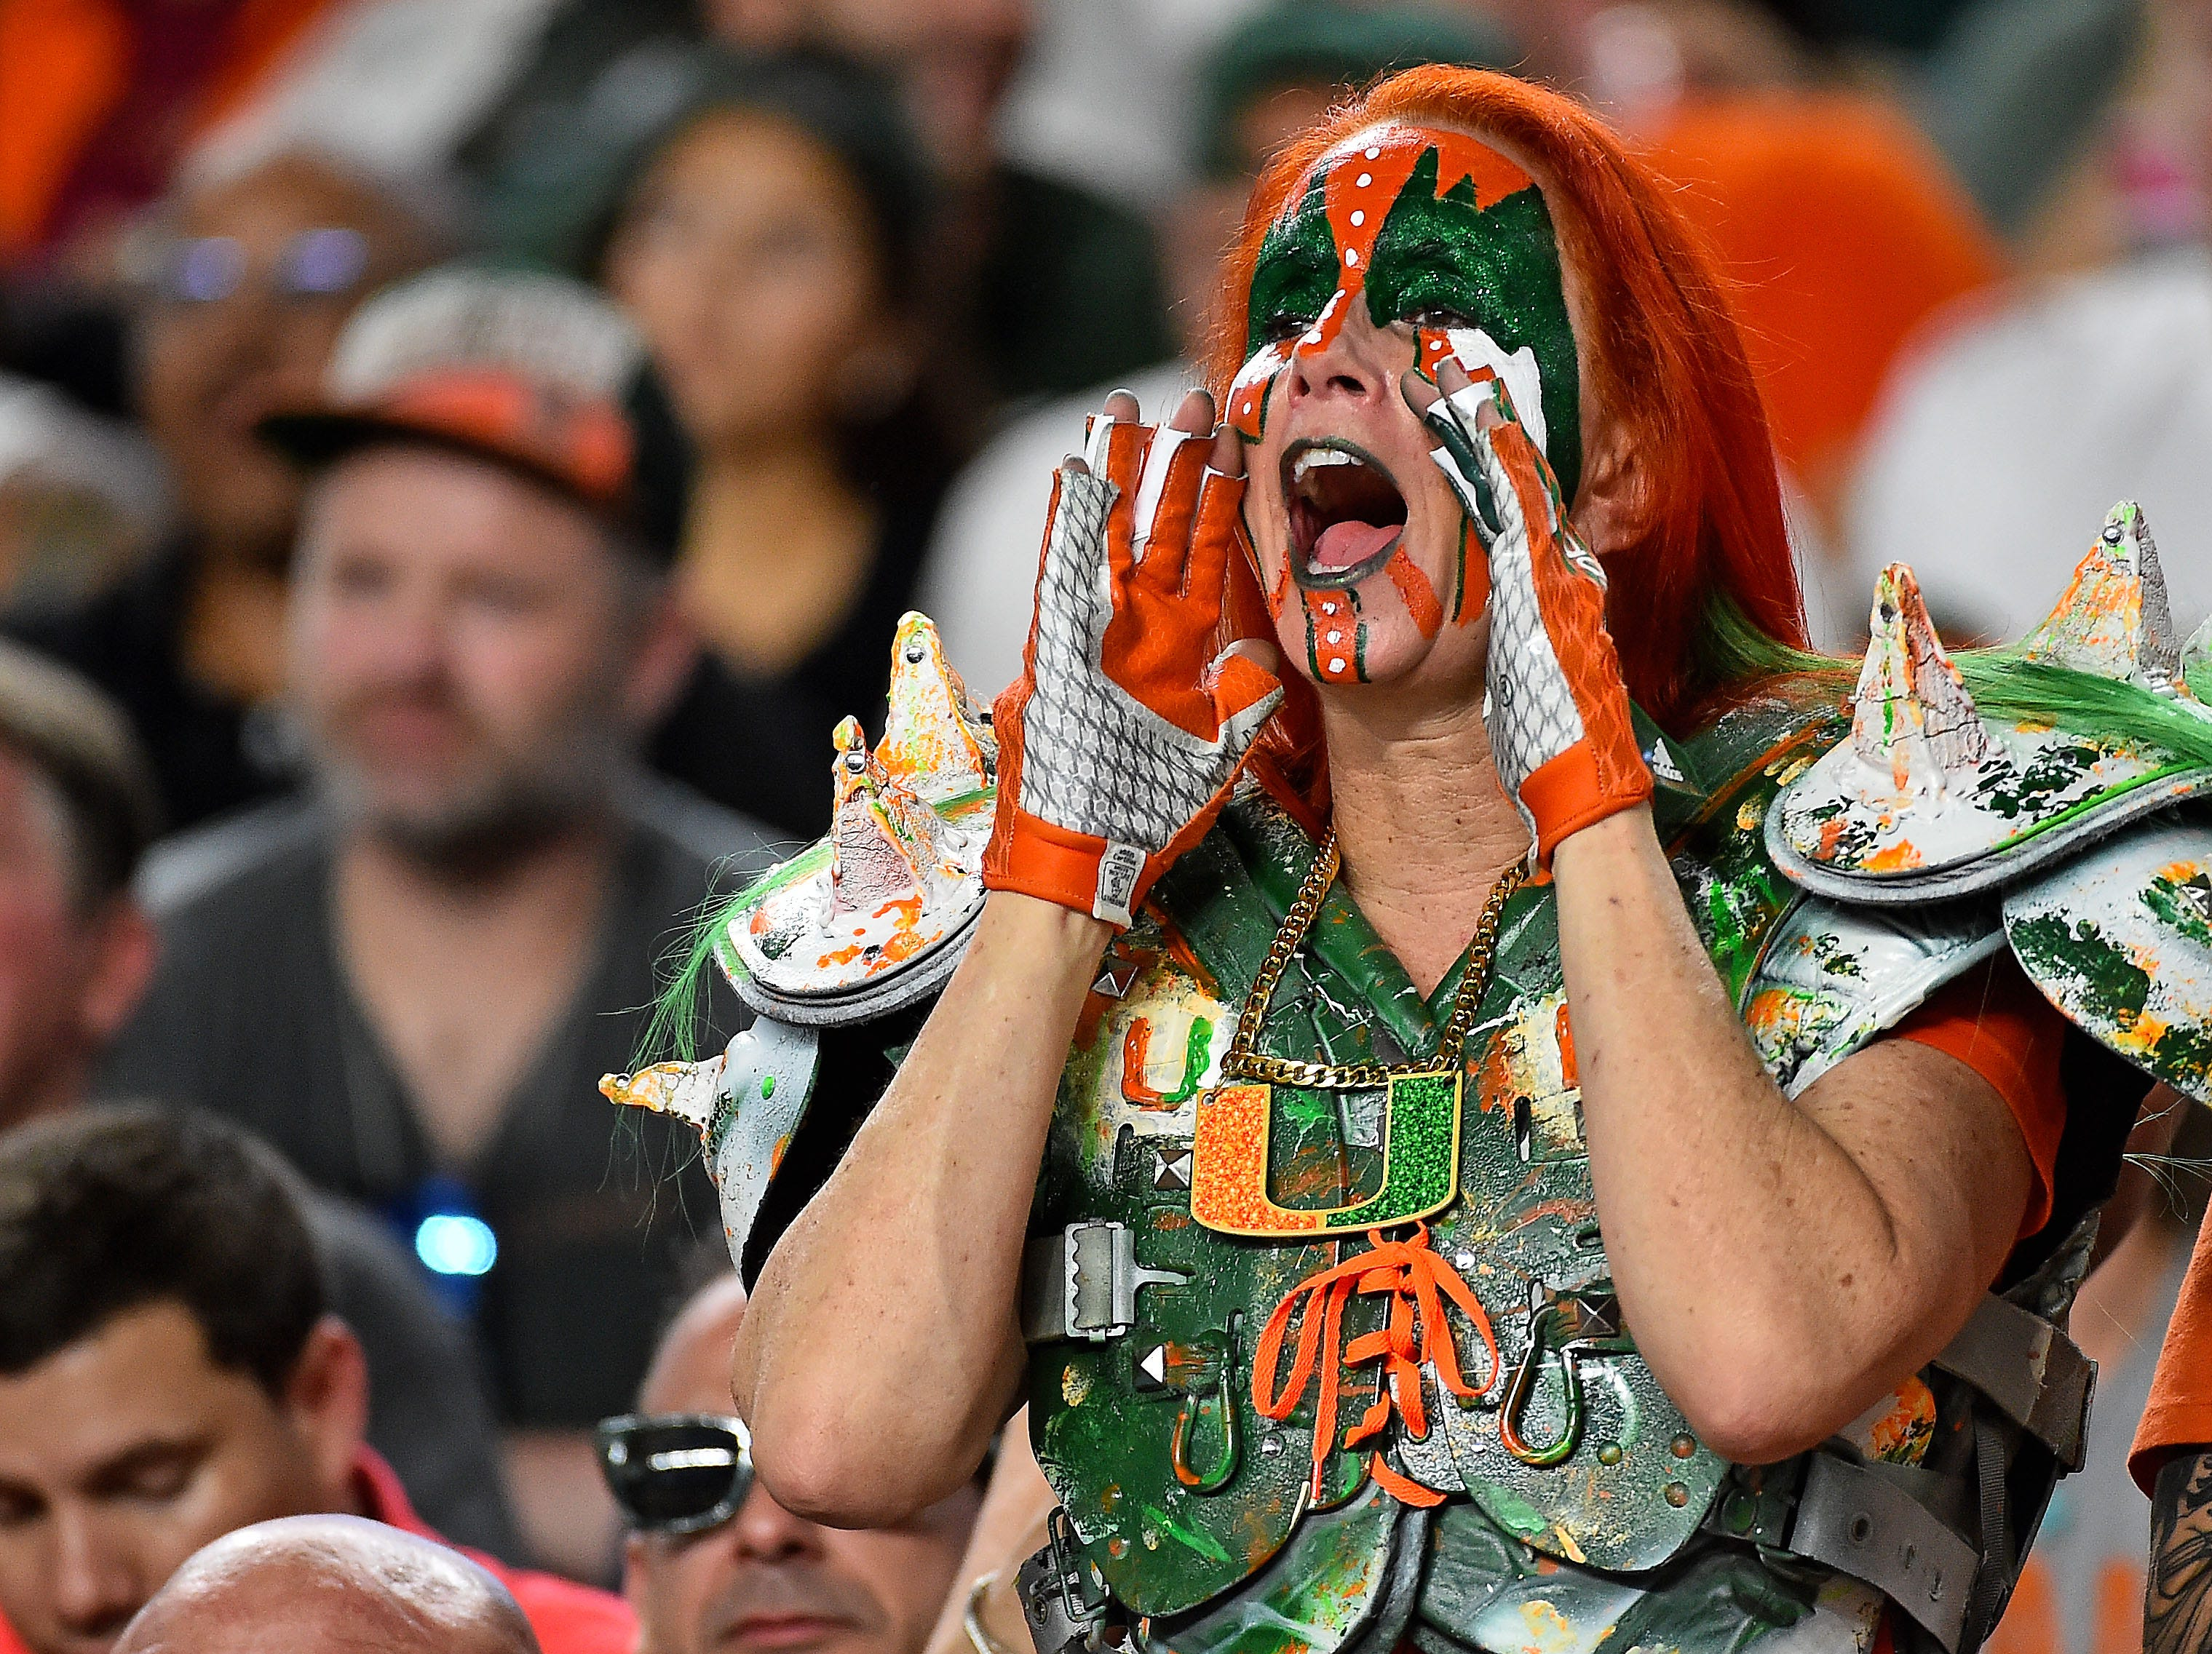 Week 2: A Miami Hurricanes fan cheers during the second half against the Savannah State Tigers at Hard Rock Stadium.